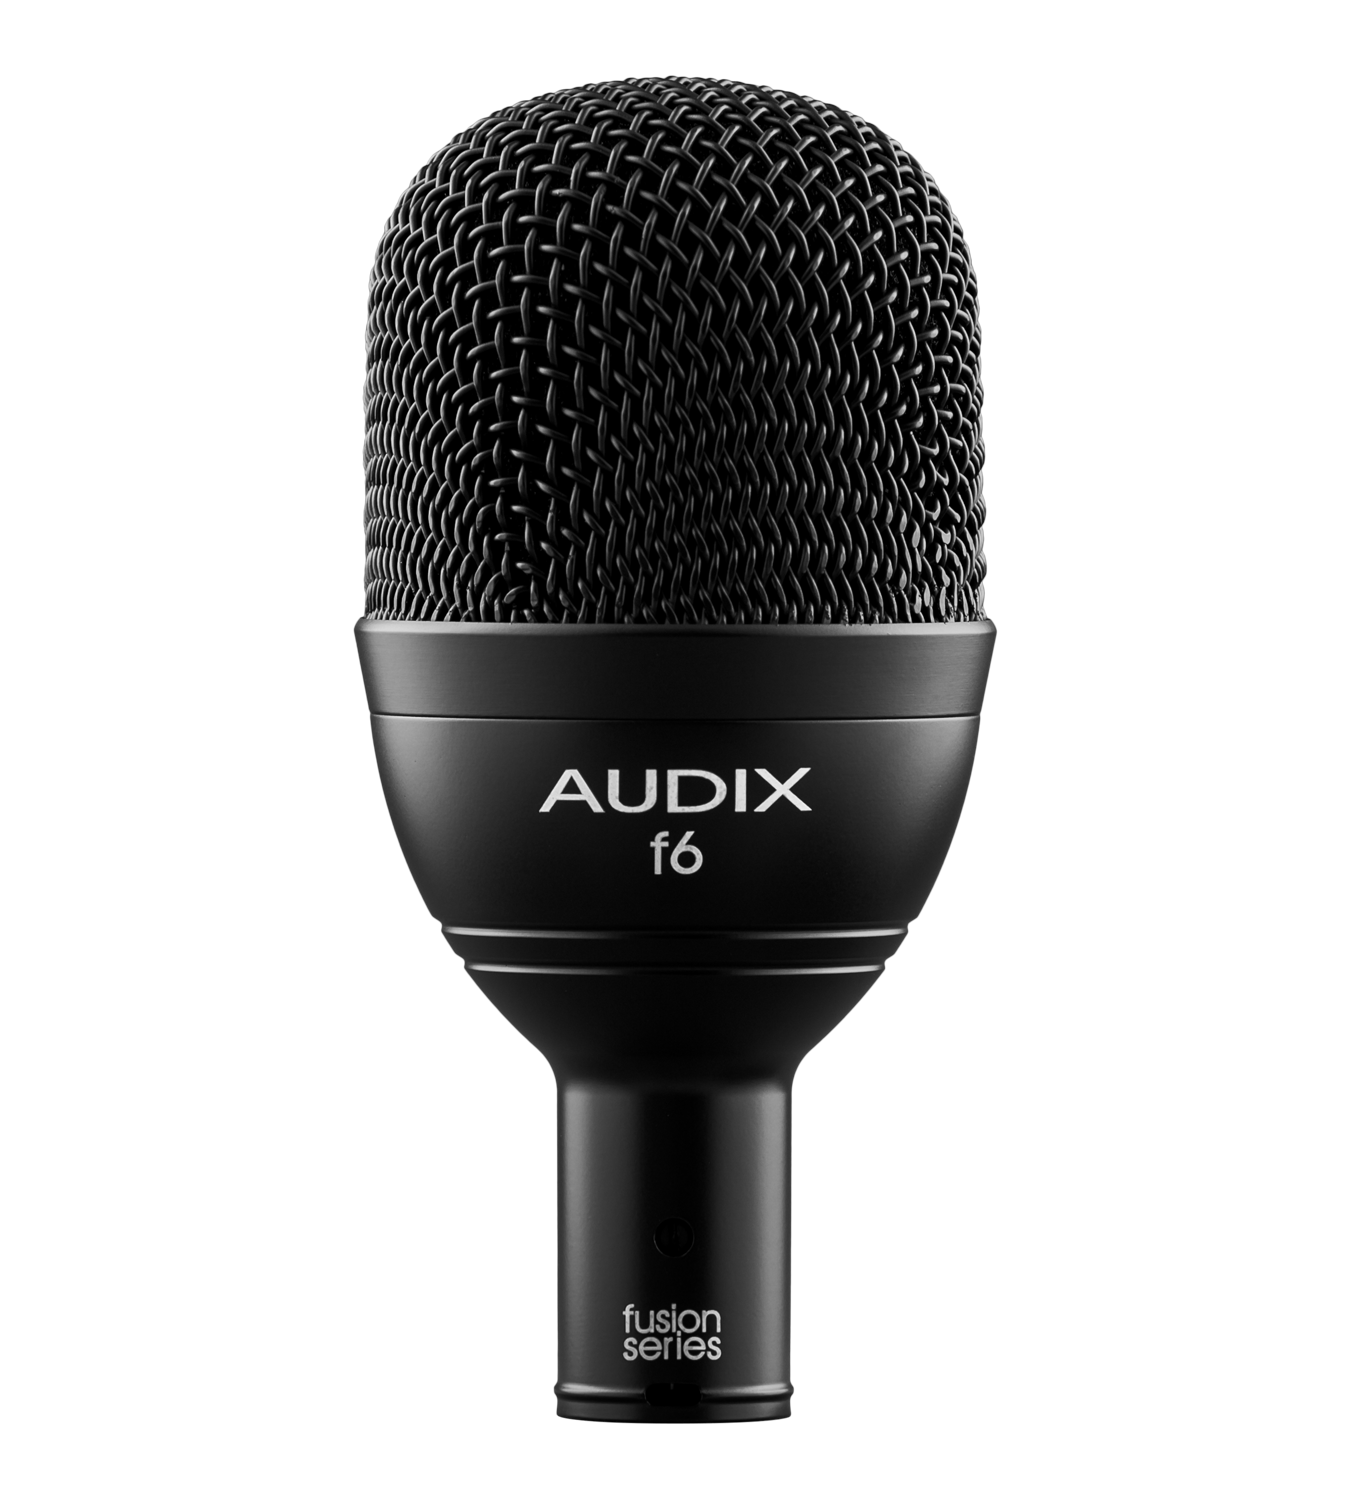 Audix f6 Instrument Mic